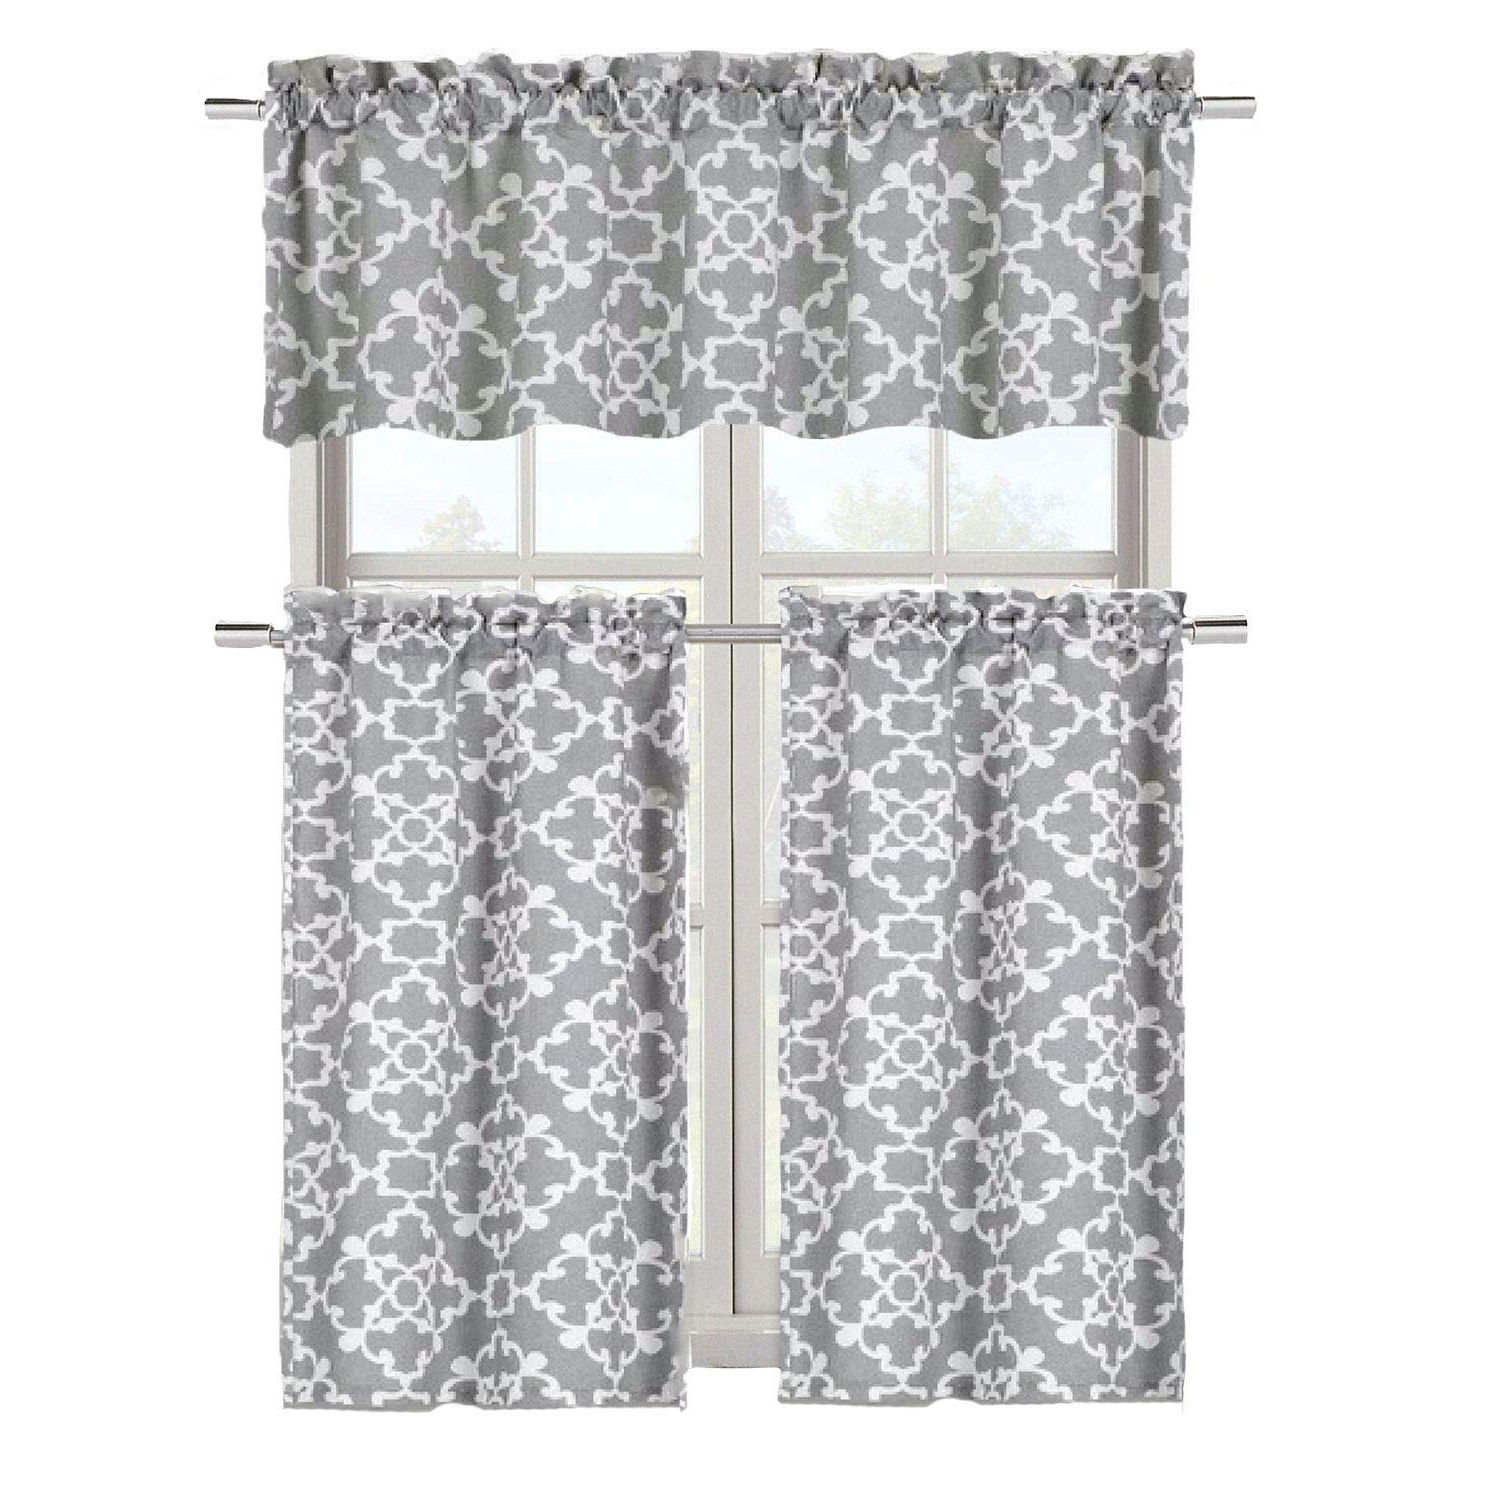 Geometric Print Microfiber 3 Piece Kitchen Curtain Valance And Tiers Sets Regarding Newest Goodgram Ultra Luxurious Grey Shabby 3 Piece Kitchen Curtain Tier & Valance Set By (View 5 of 20)